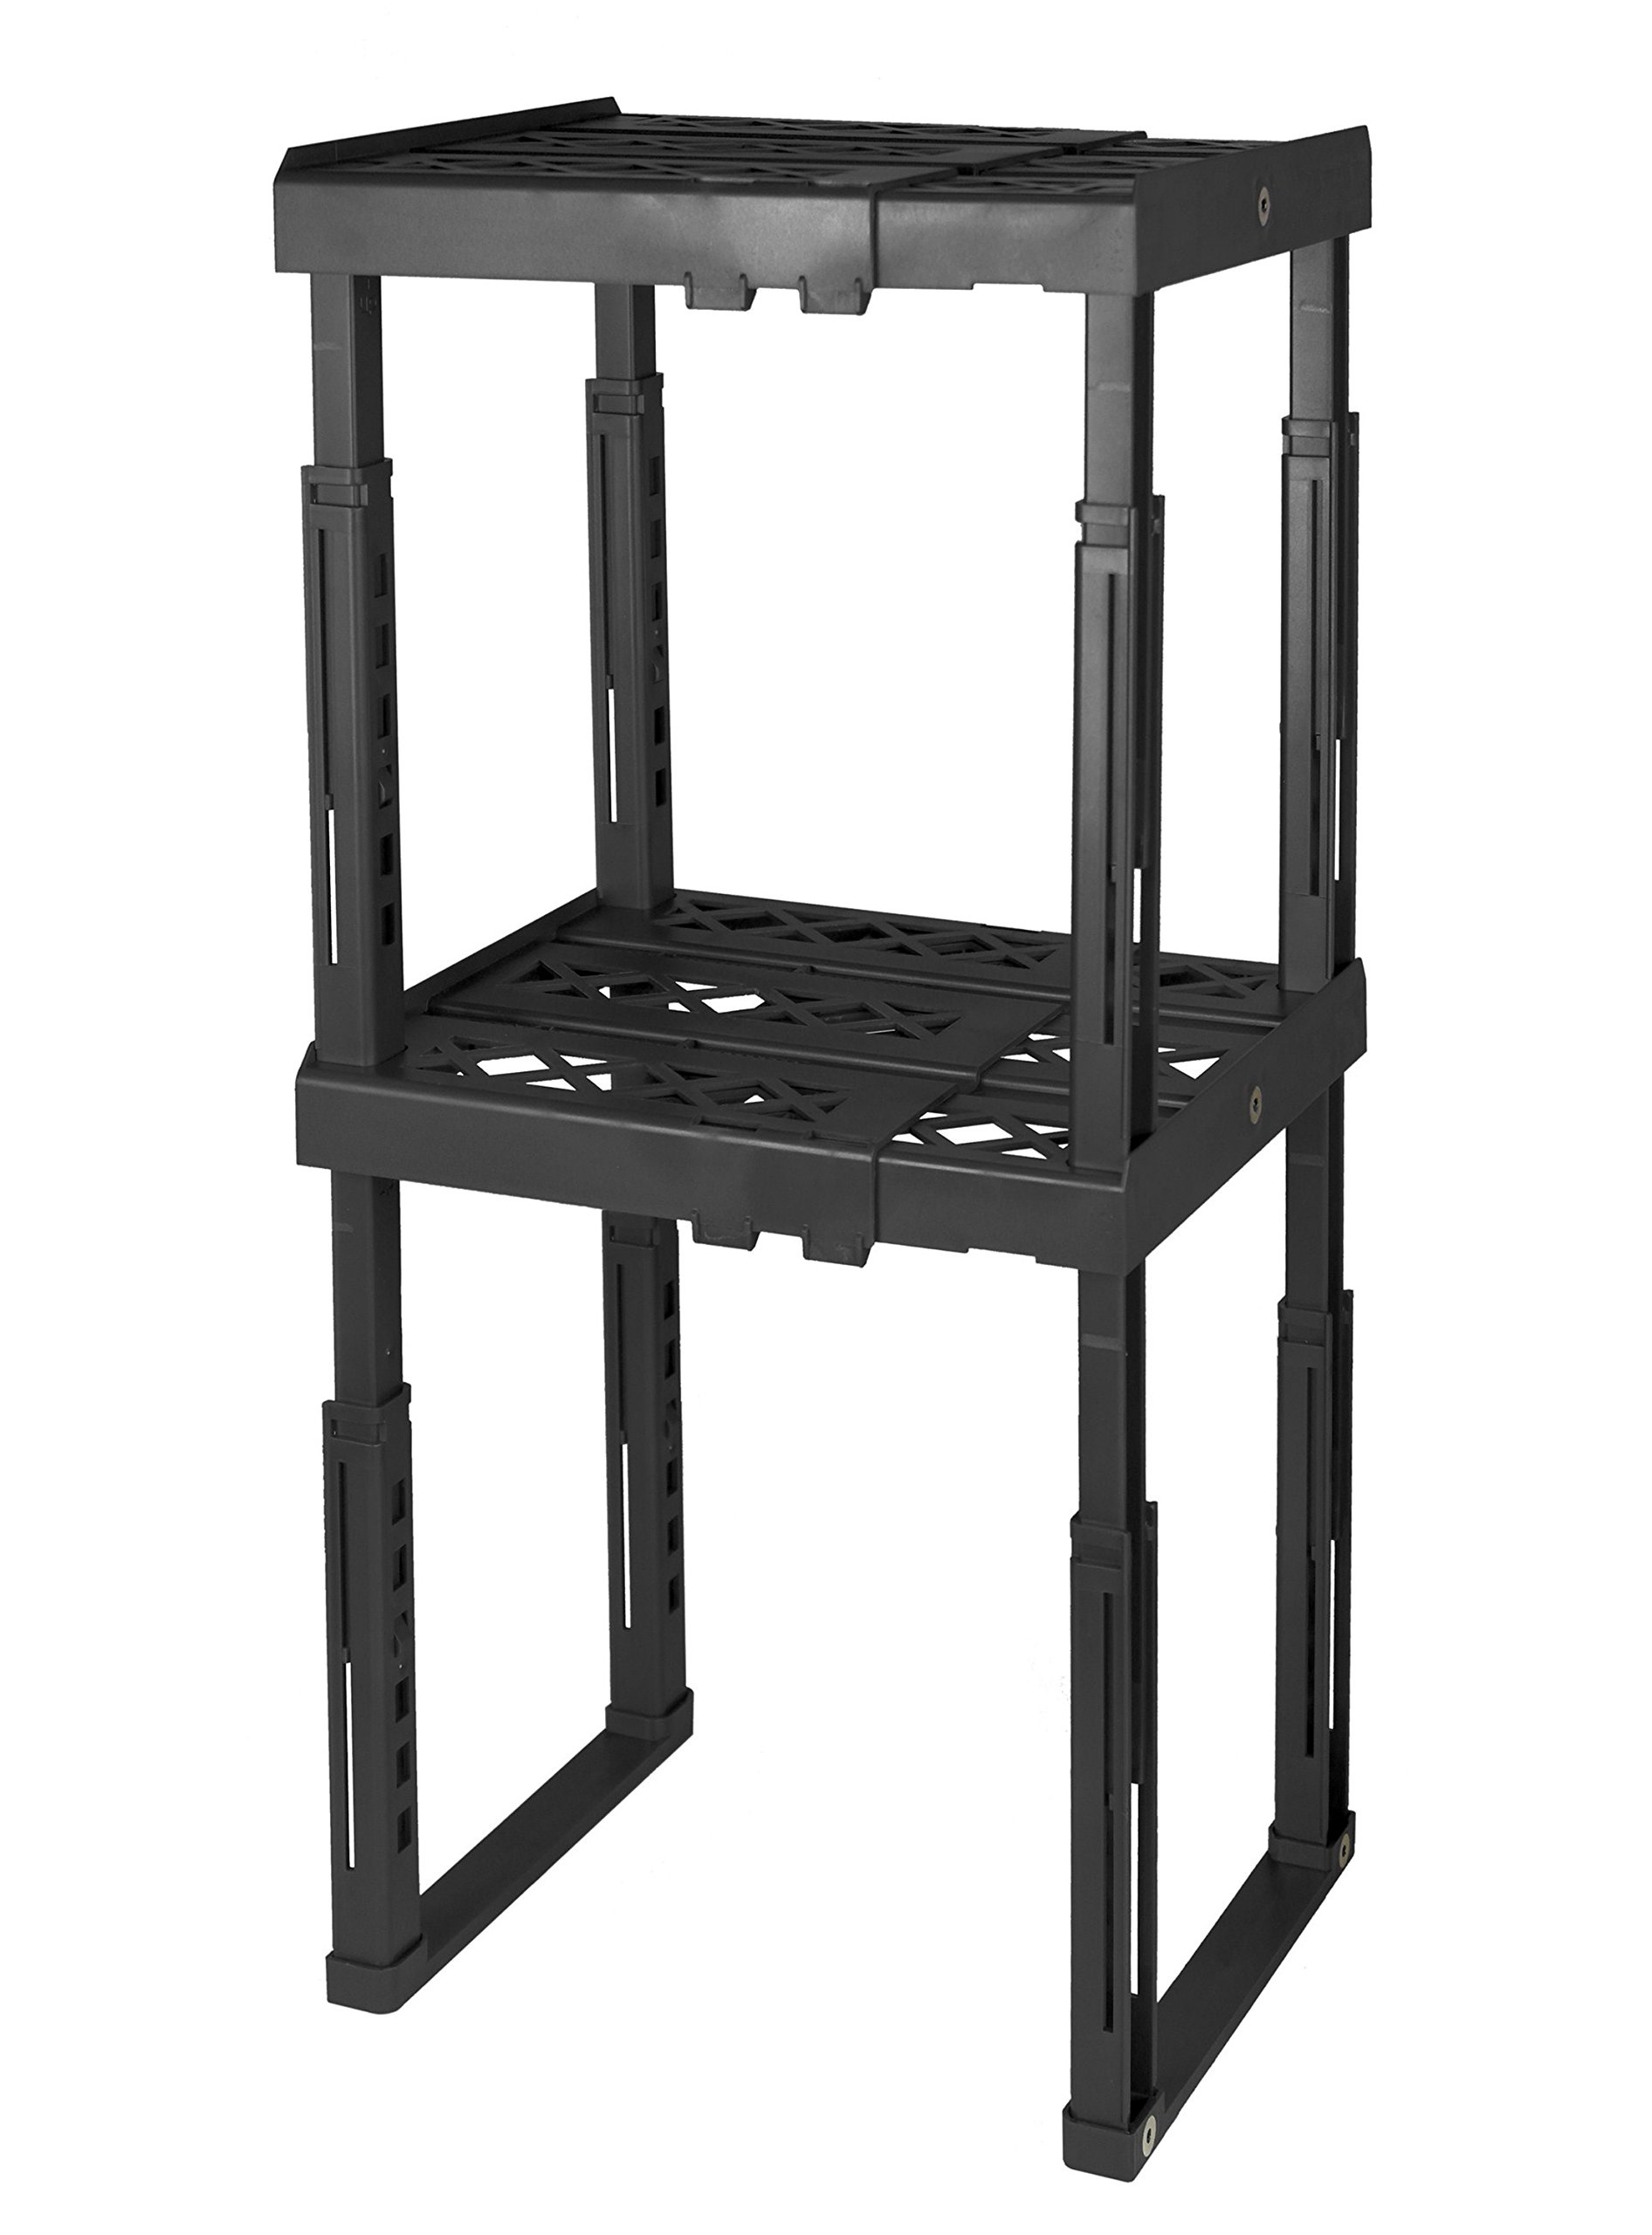 Tools for School Locker Shelf. Adjustable Width 8'' - 12 1/2'' and Height 9 3/4'' - 14''. Stackable and Heavy Duty. (Black, Double) by Tools for School